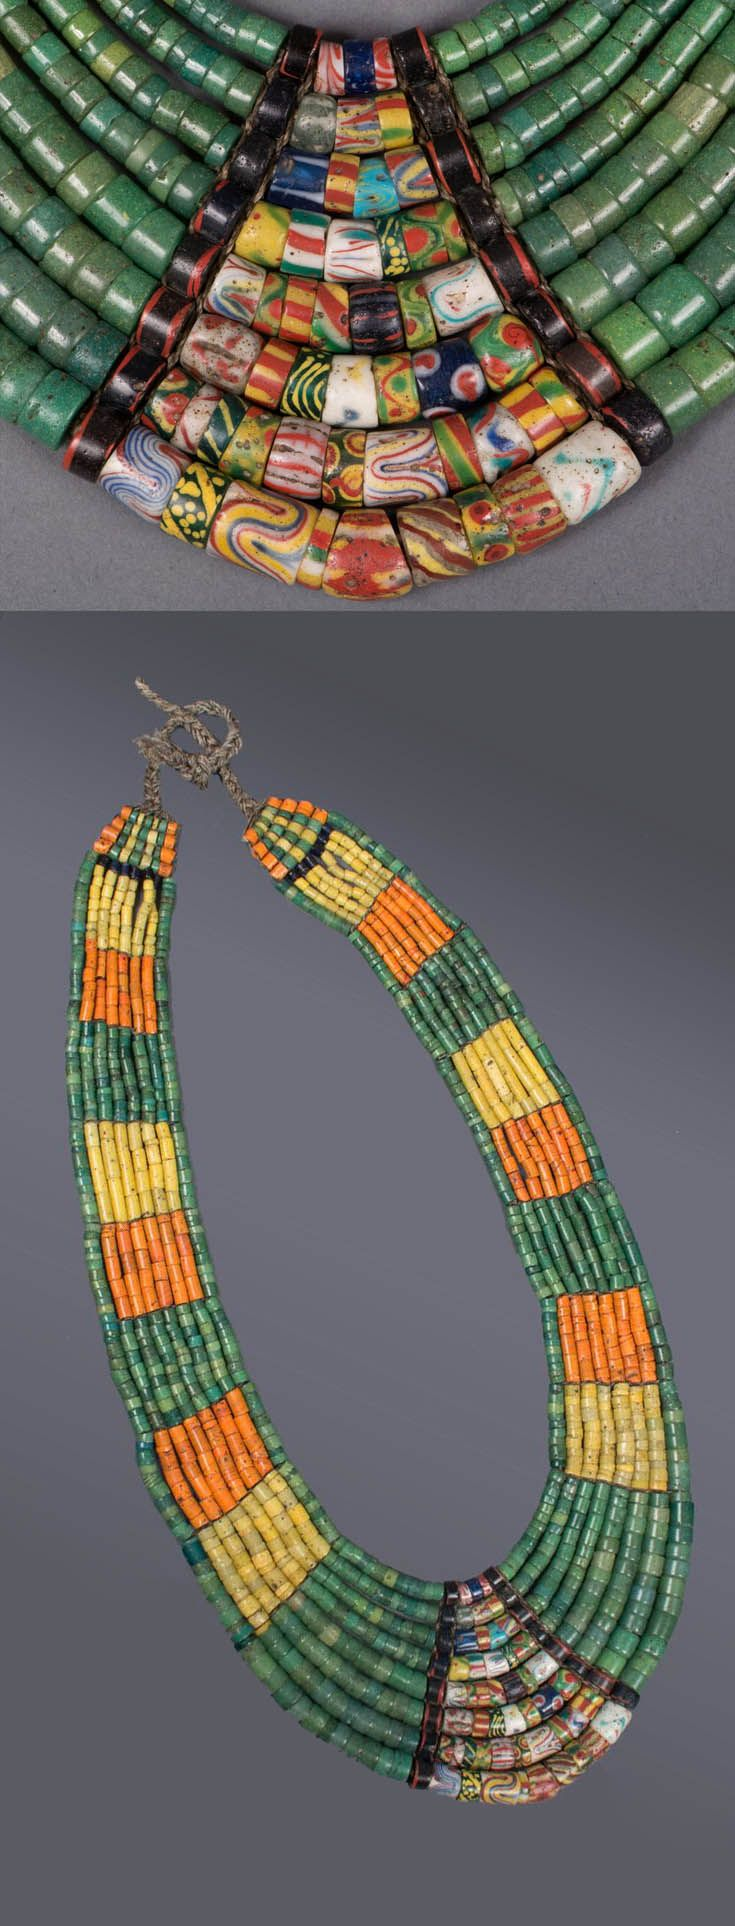 Taiwan | Beaded collar from the Paiwan people; antique glass beads, animal hair | ca. late 19th to early 20th century | Sold